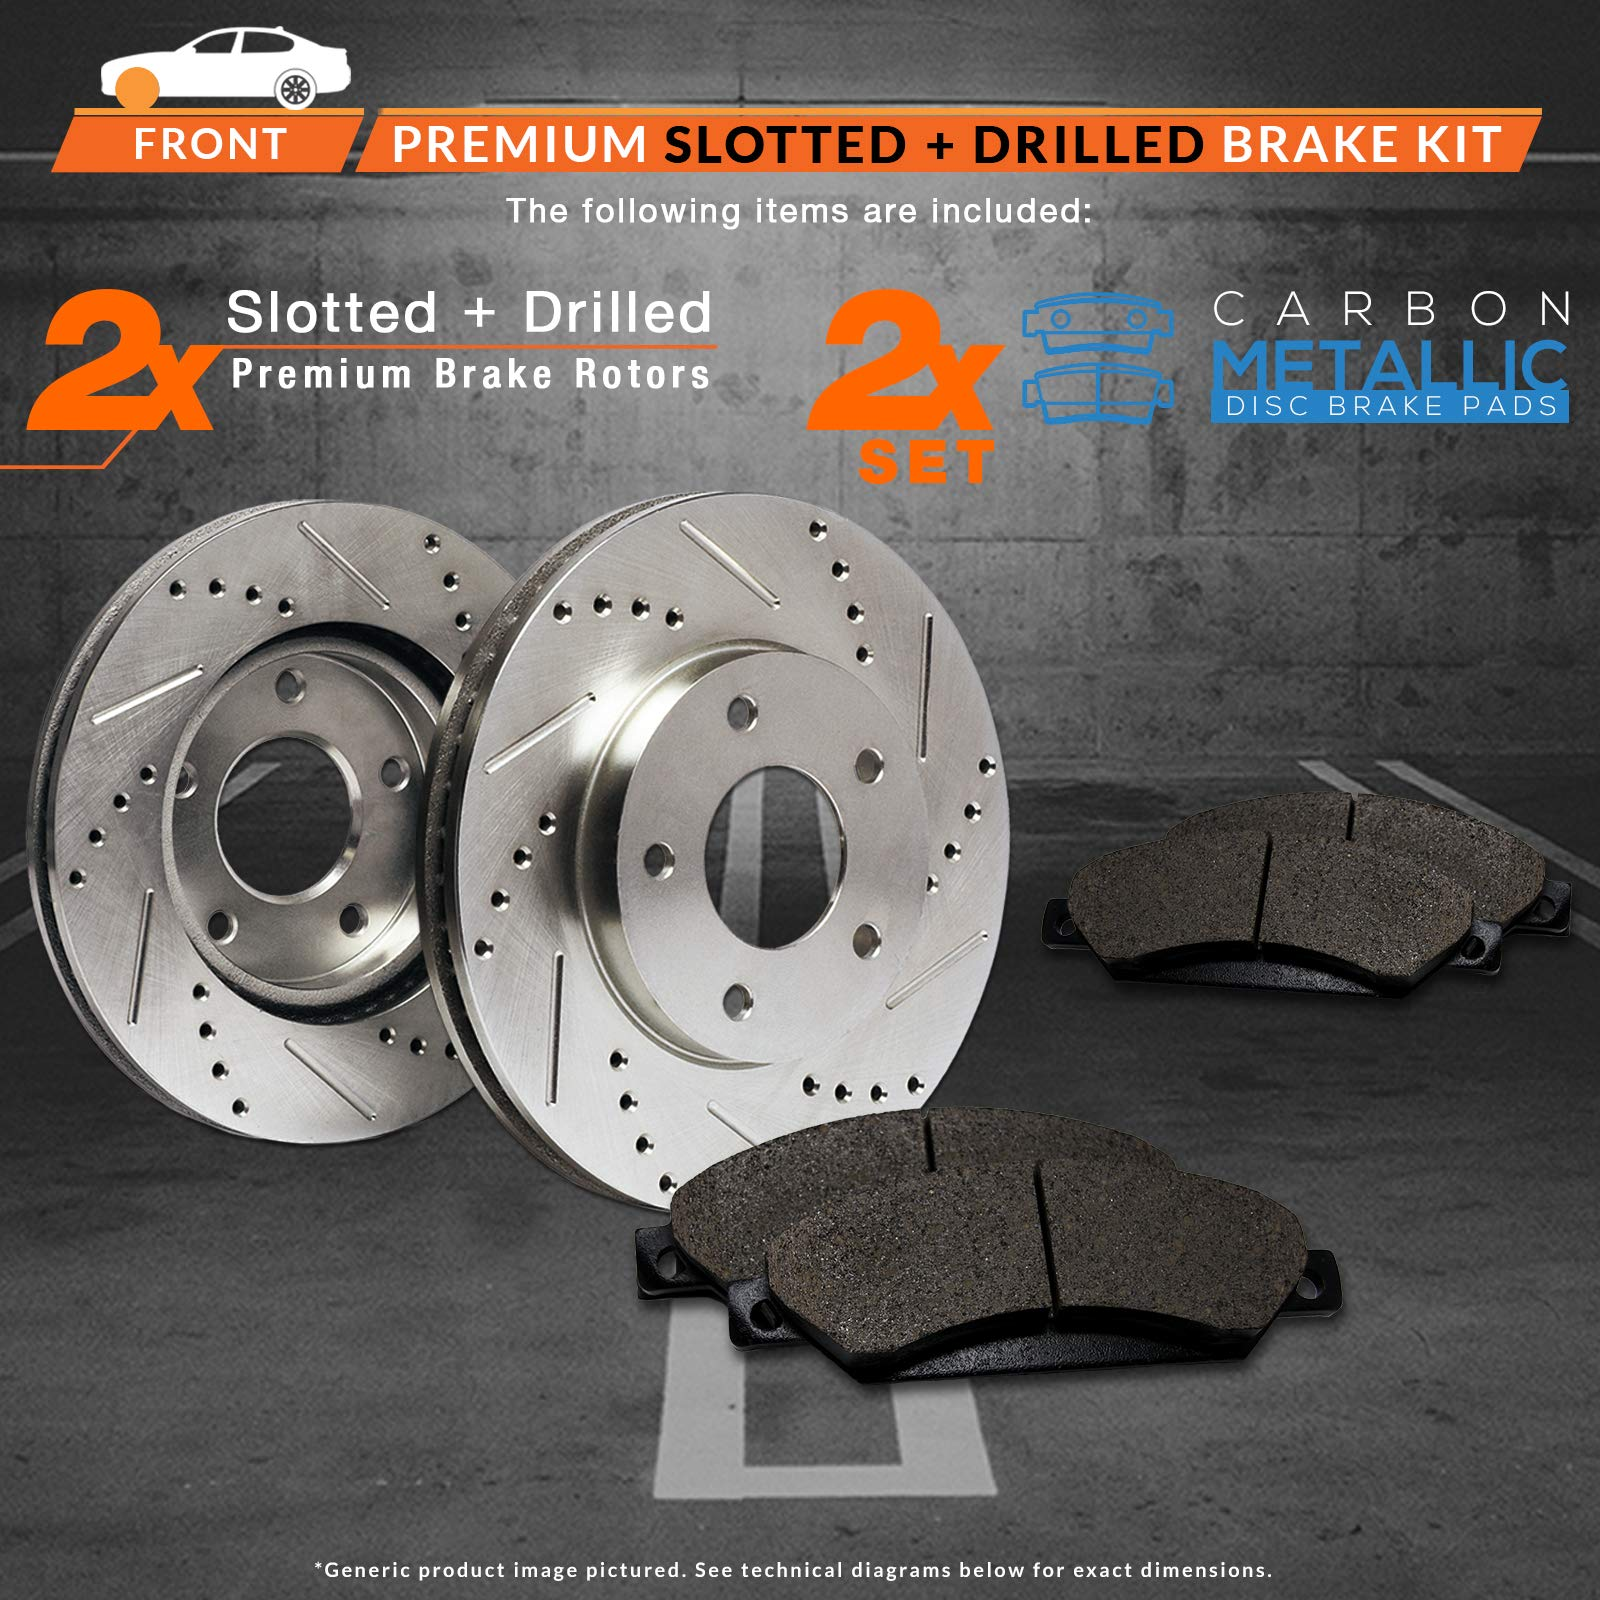 2006-2008 Lincoln Mark LT 4WD Premium Slotted Drilled Rotors + Ceramic Pads Max Brakes Front Performance Brake Kit KT011631 Fits: 2004-2008 Ford F150